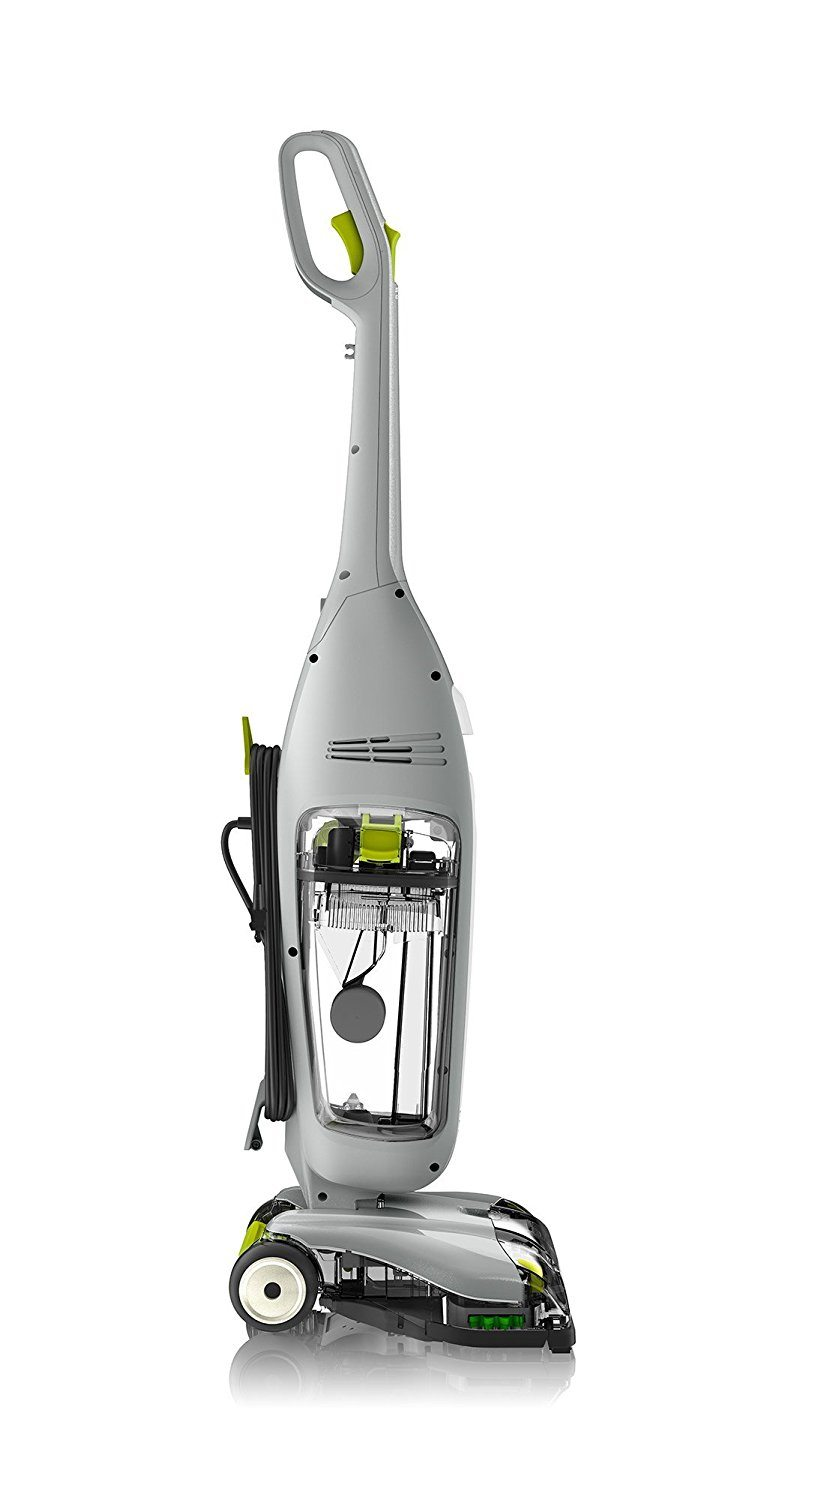 Best steam mop for tile and grout kitchen gear reviews this is another perfect steam mop for tile and grout it is designed in such a way that it woulddeliver the best tile cleaning dailygadgetfo Choice Image